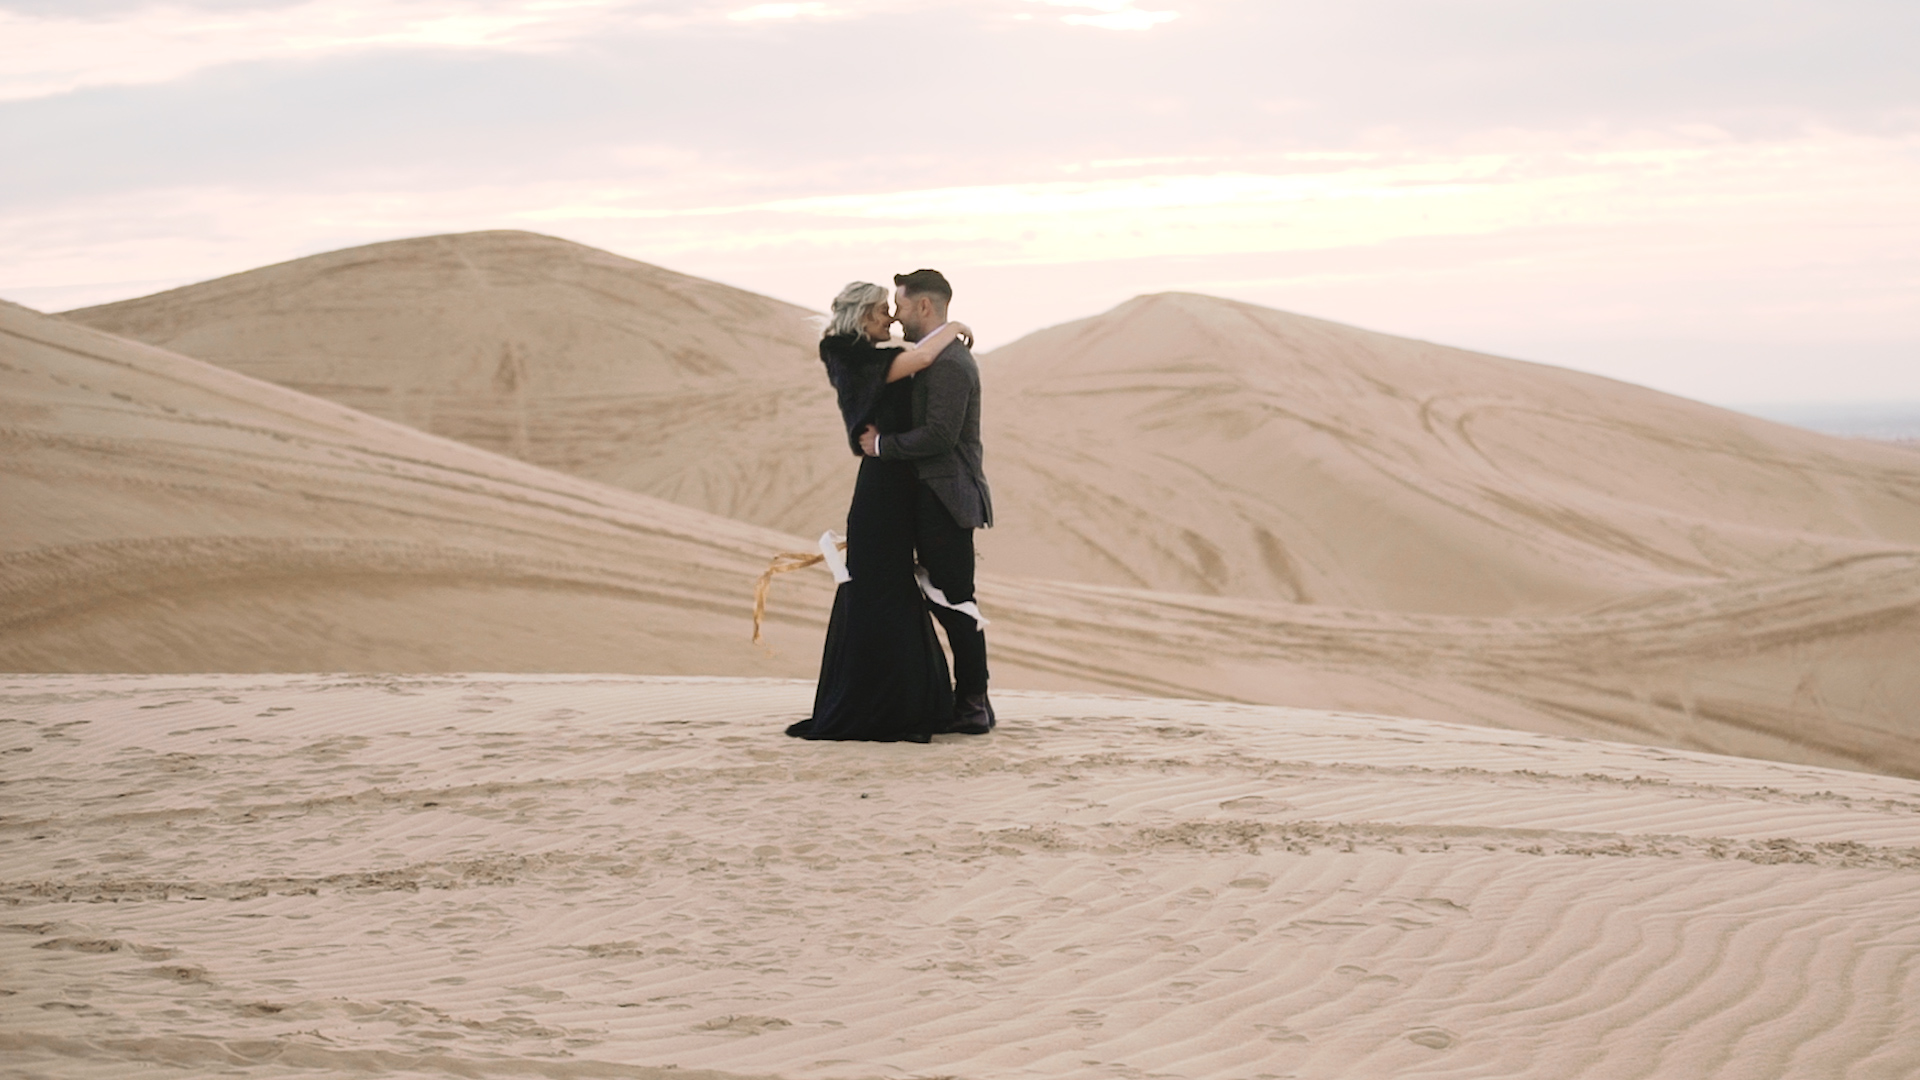 THE FAIRYTALE - Package Includes:- Full length movie (30 to 60 minutes)- Cinematic mini movie (up to 6 minutes)- 8 hours of wedding day coverage- 2 videographers- Online Delivery of edits